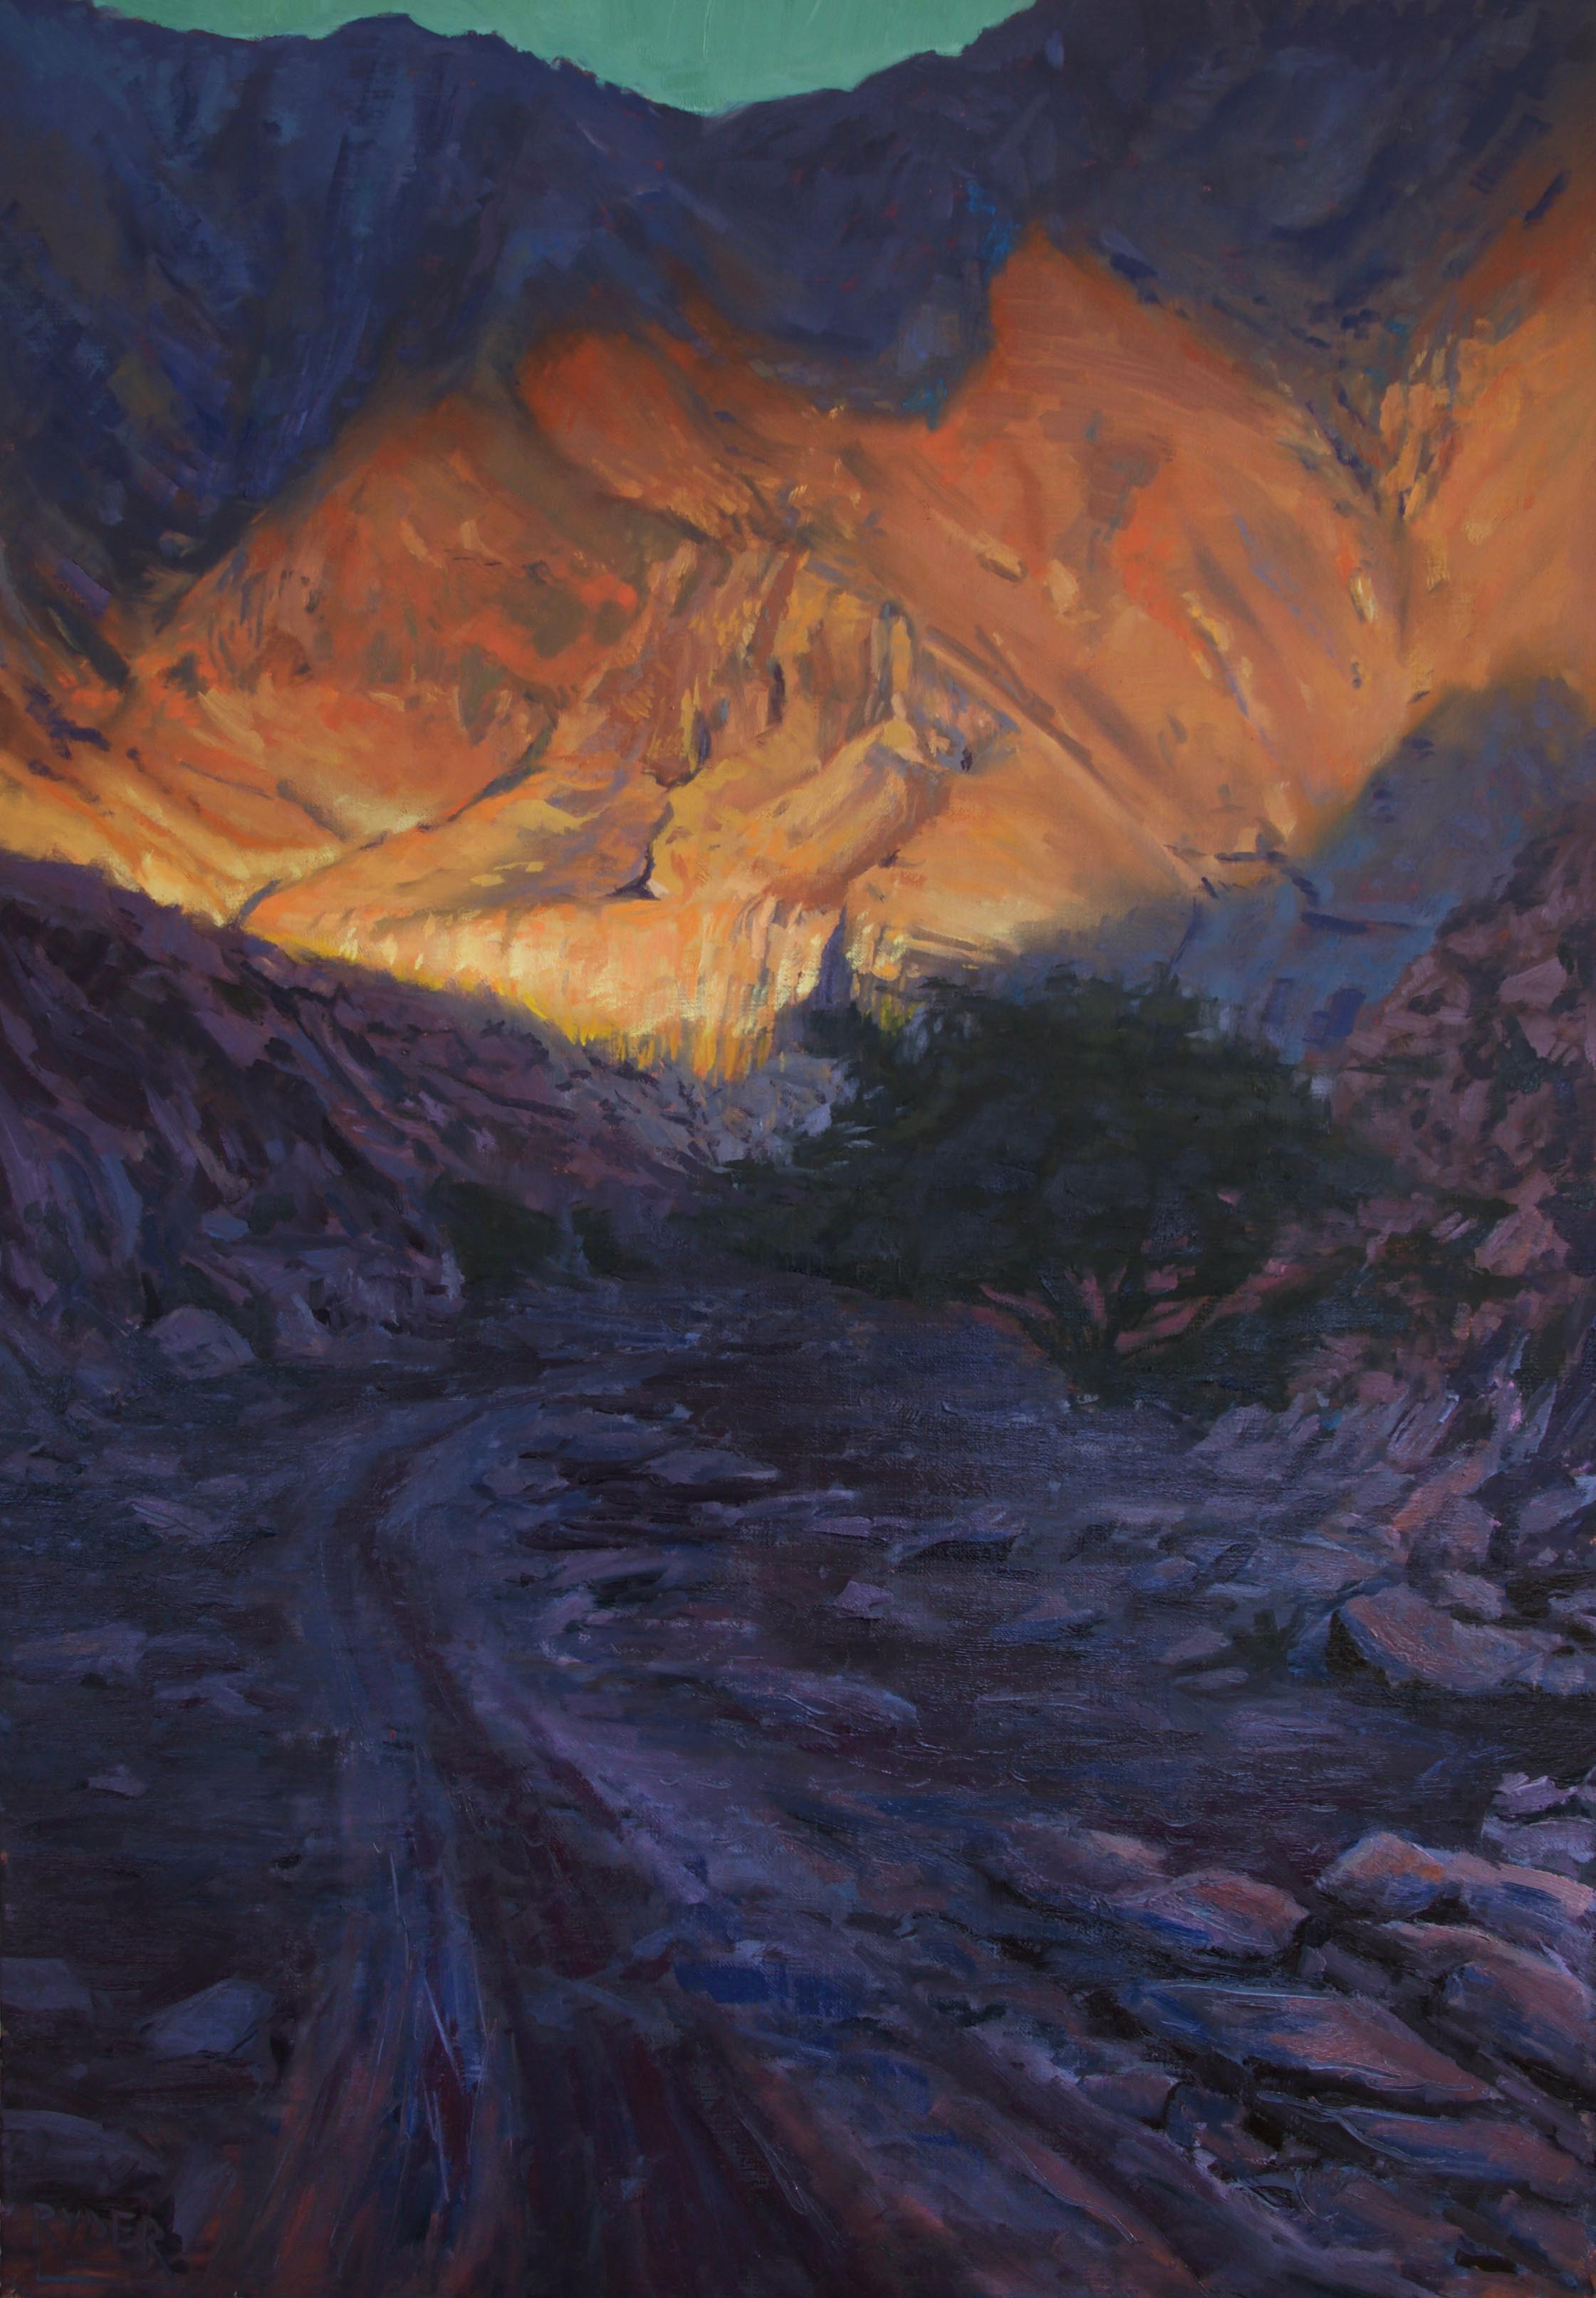 Daybreak - oil on linen